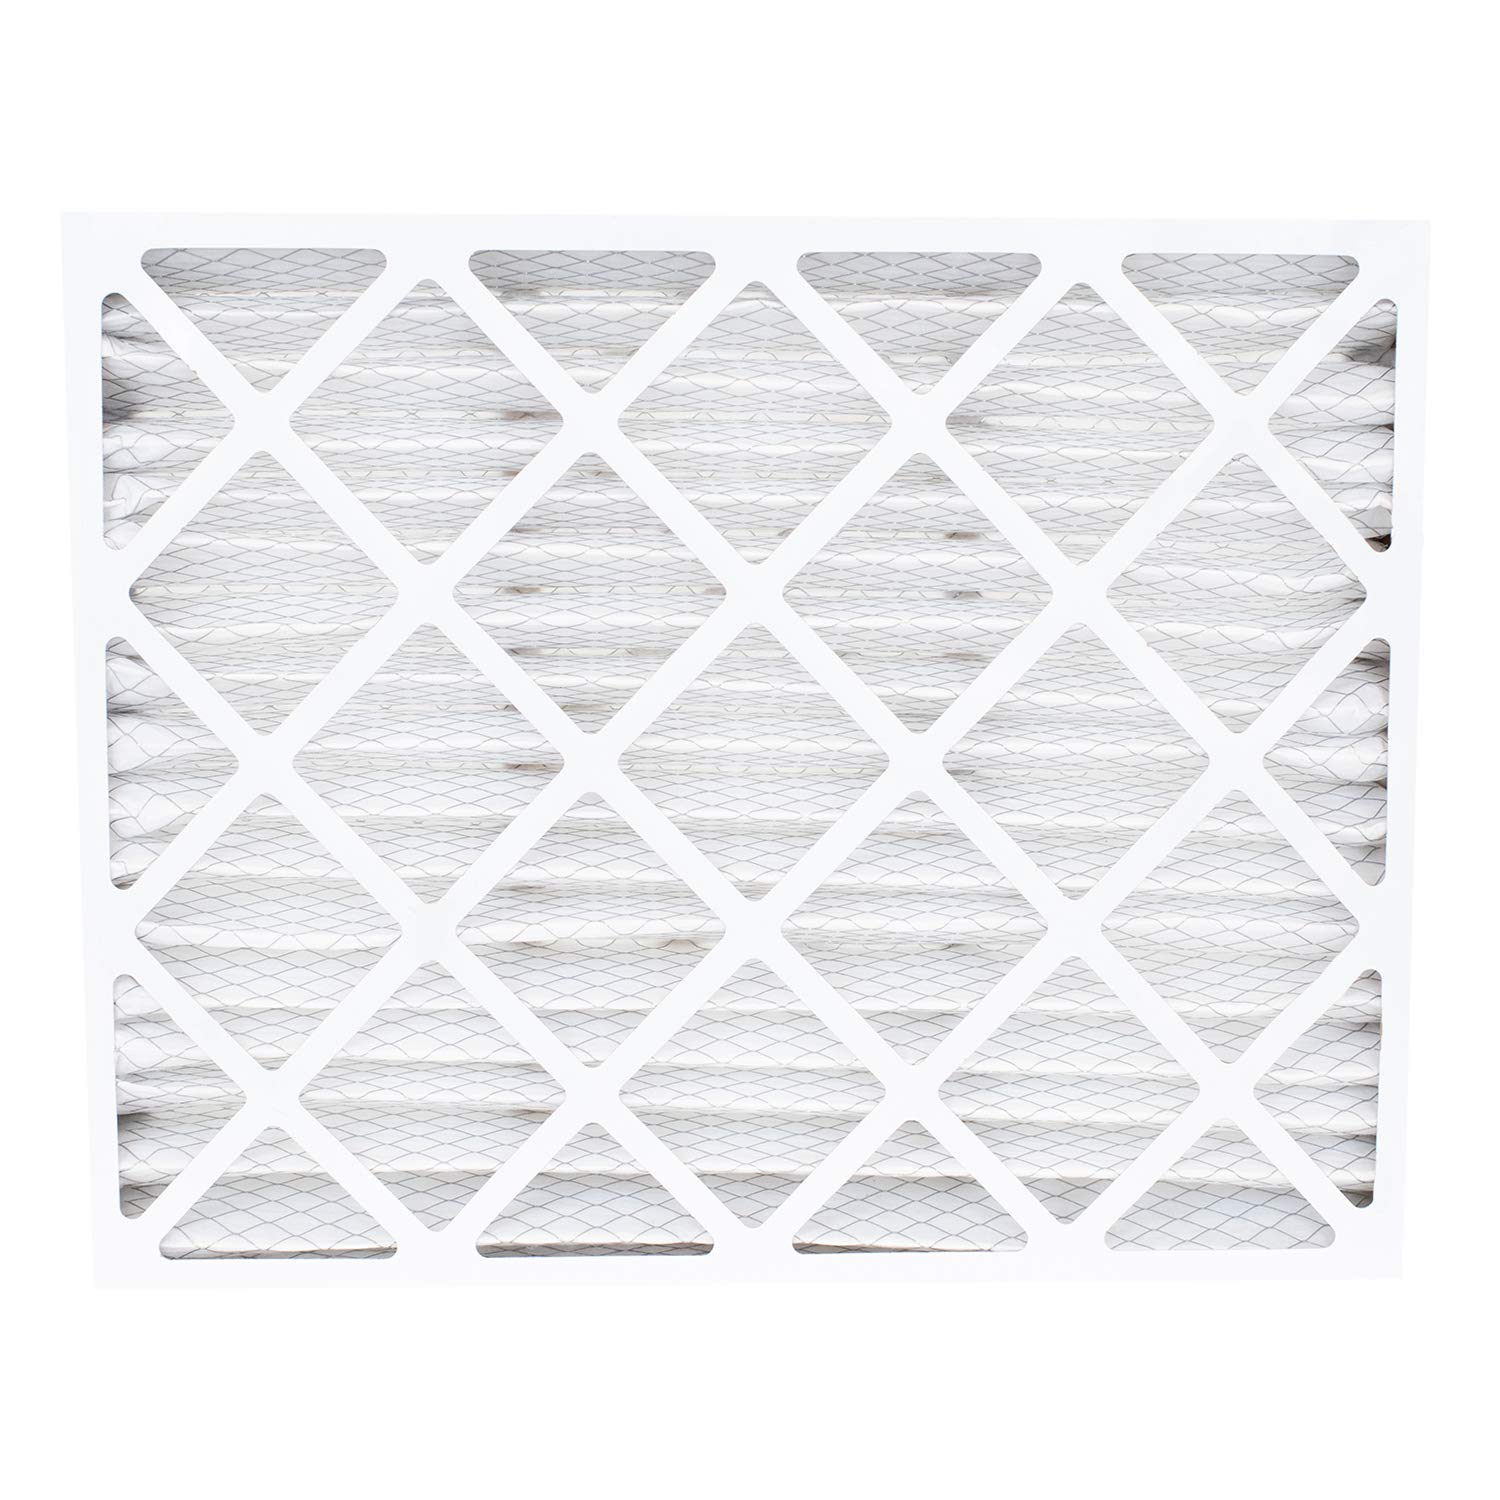 Pack of 1. FilterBuy 16x20x5 AC Furnace Air Filters Compatible with Honeywell FC100A1003 AFB Silver MERV 8